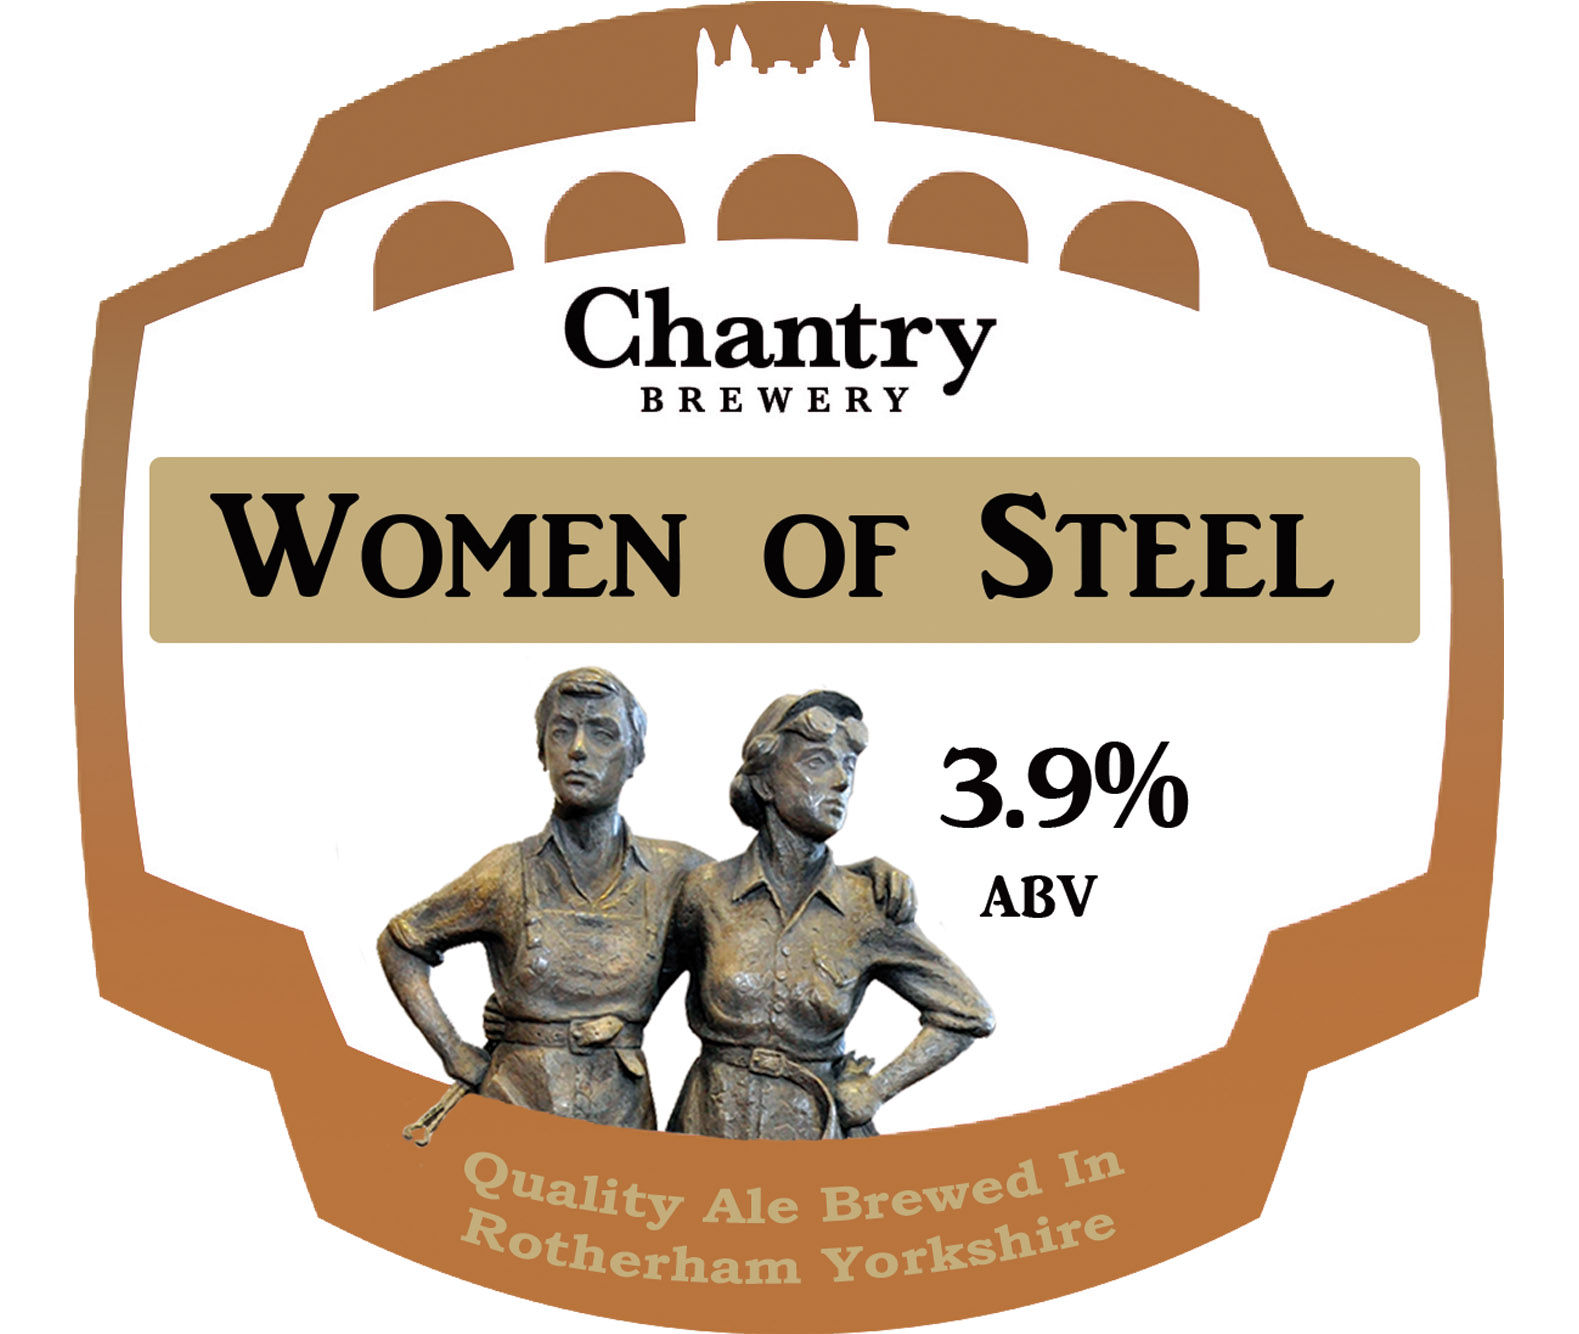 Chantry Brewery Women of Steel